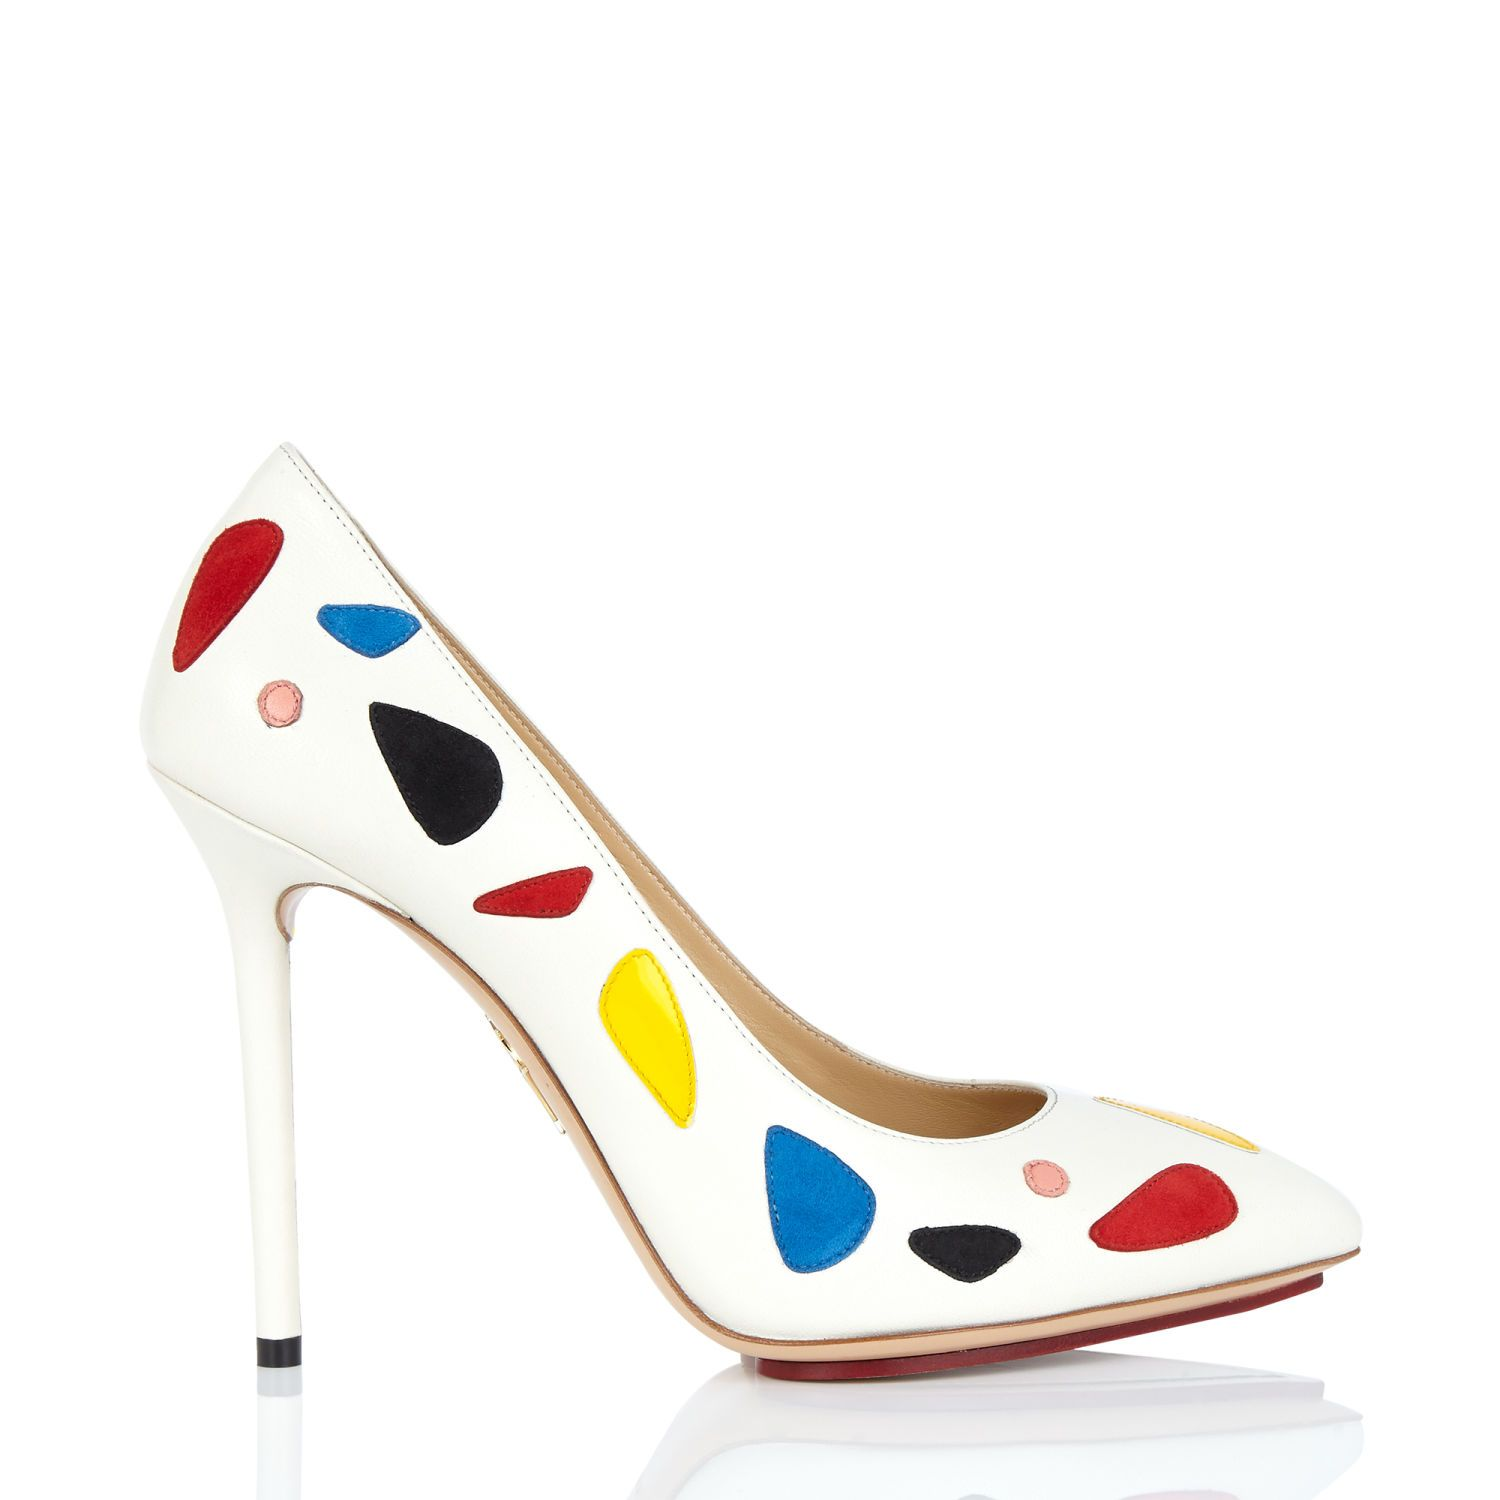 picture Charlotte Olympia Shoes and Handbags SpringSummer 2014